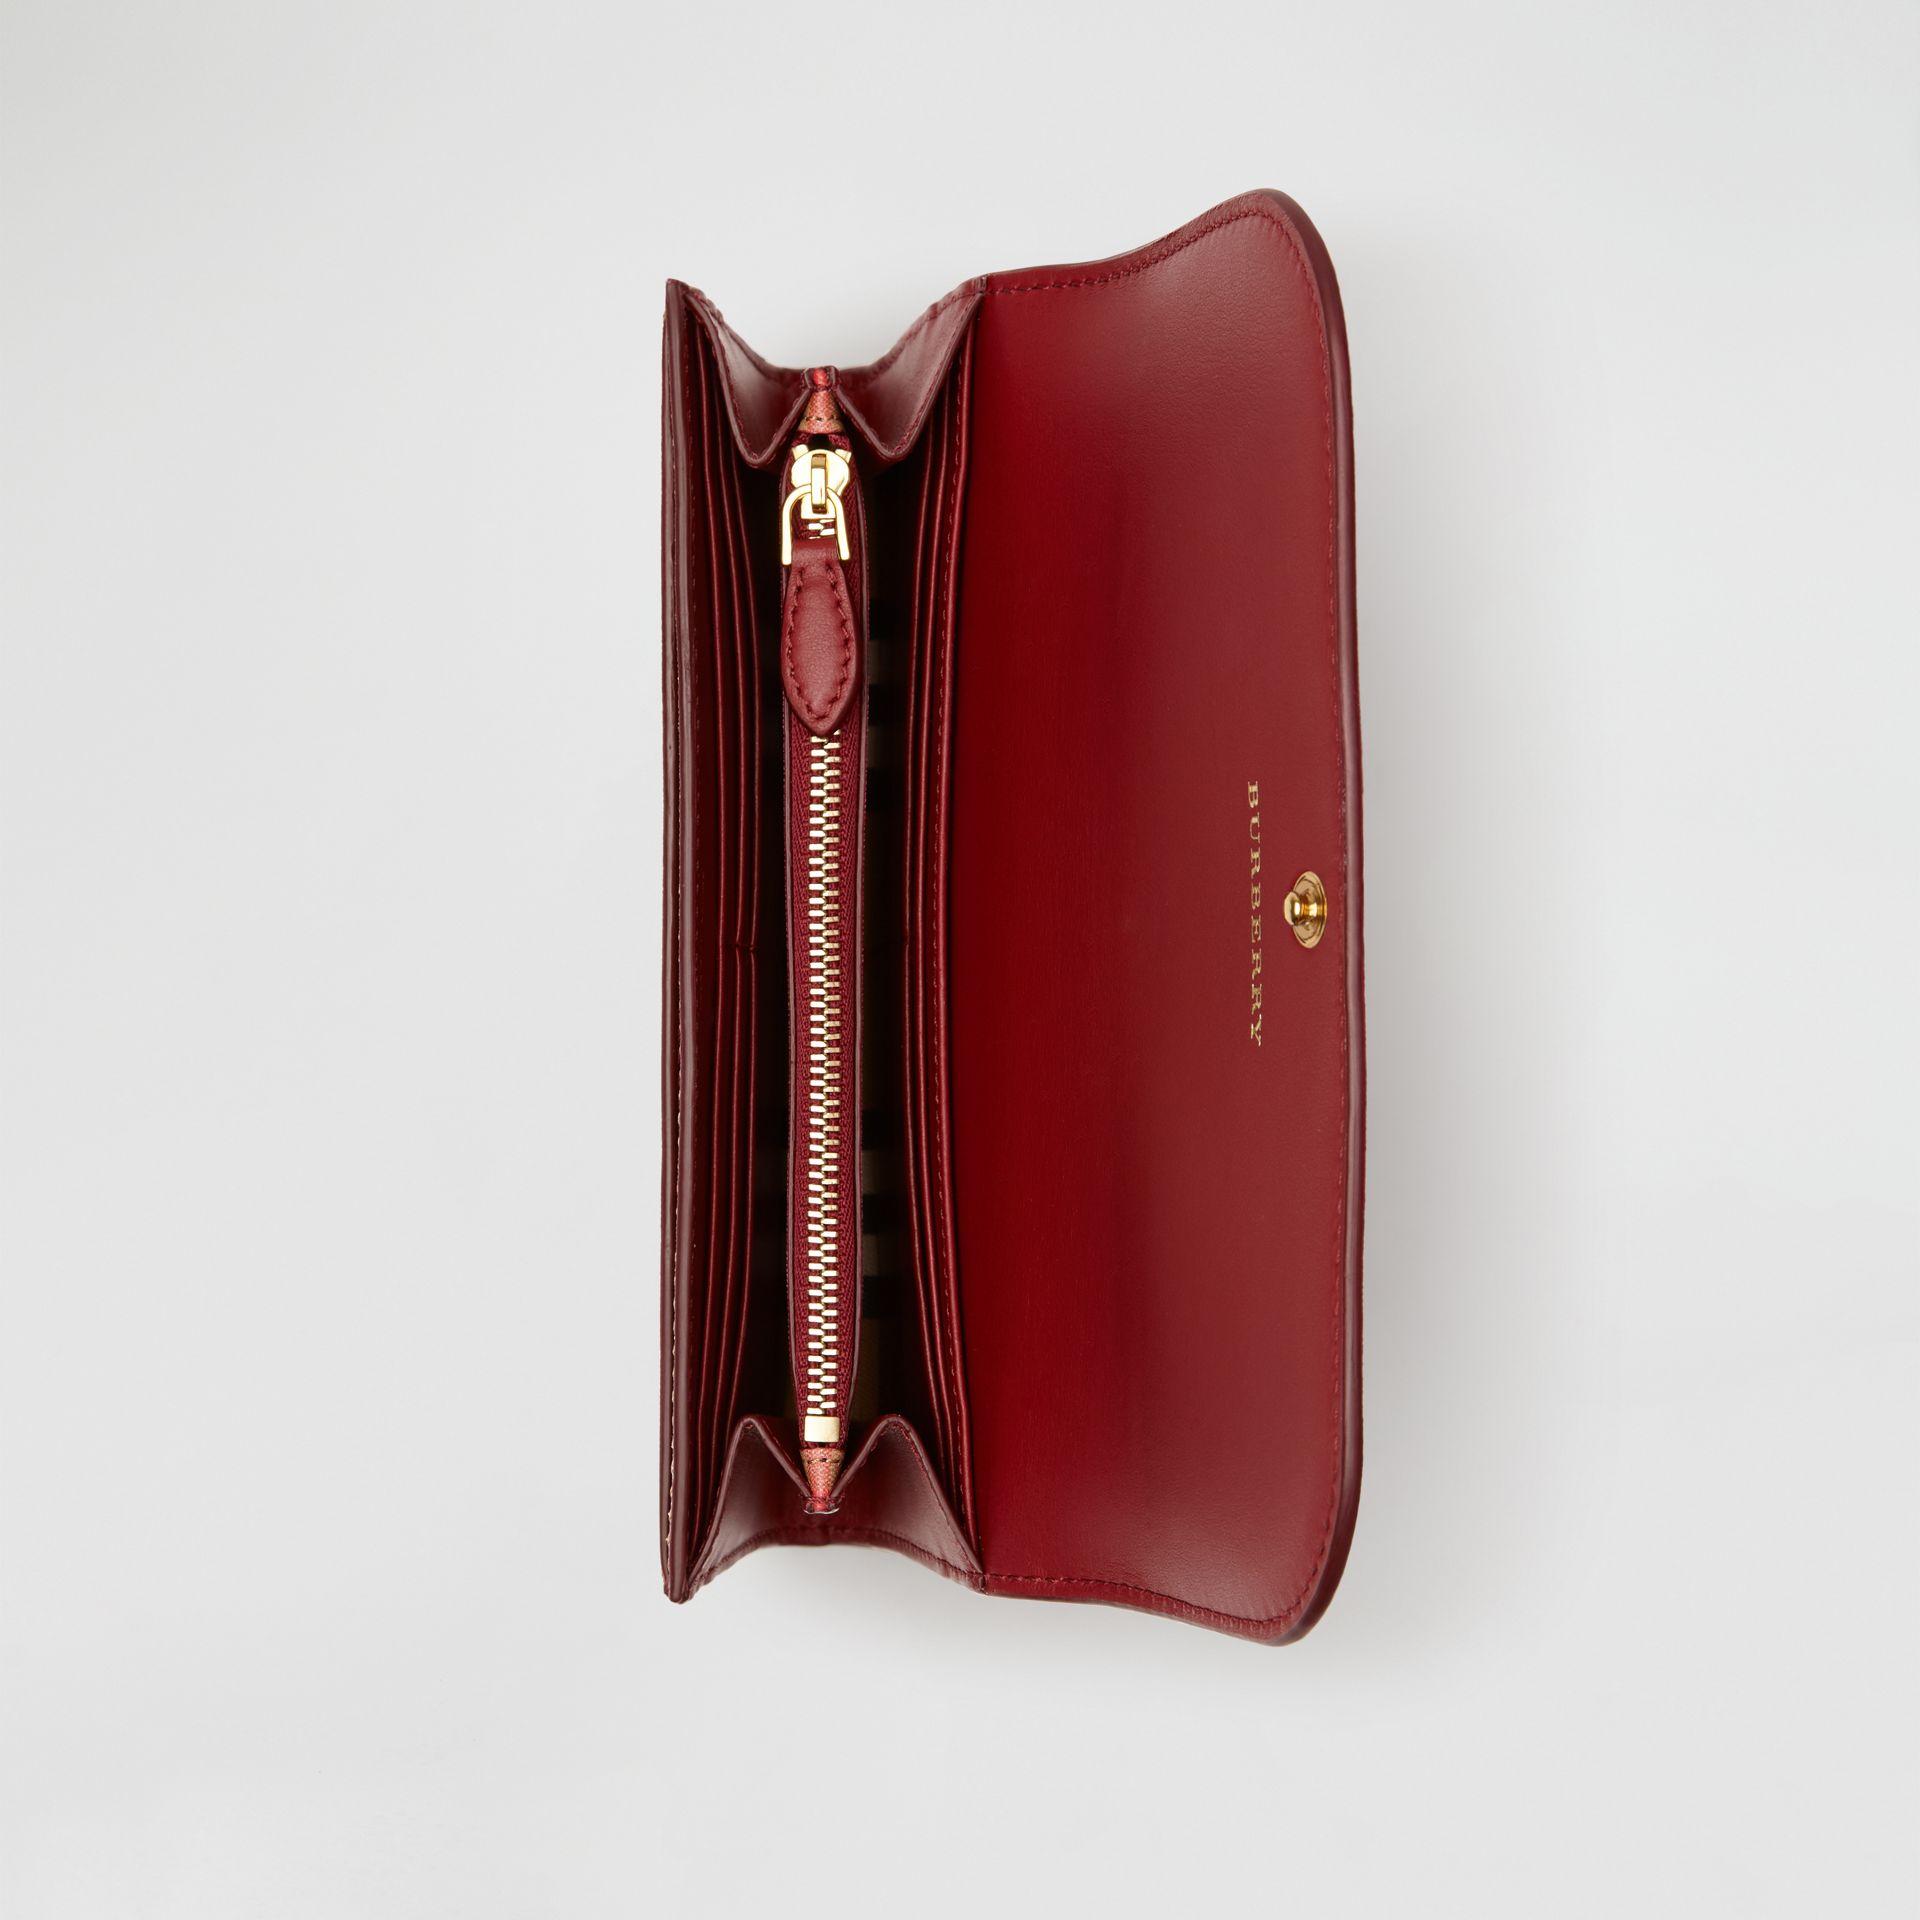 Vintage Check and Leather Continental Wallet in Crimson - Women | Burberry Singapore - gallery image 2